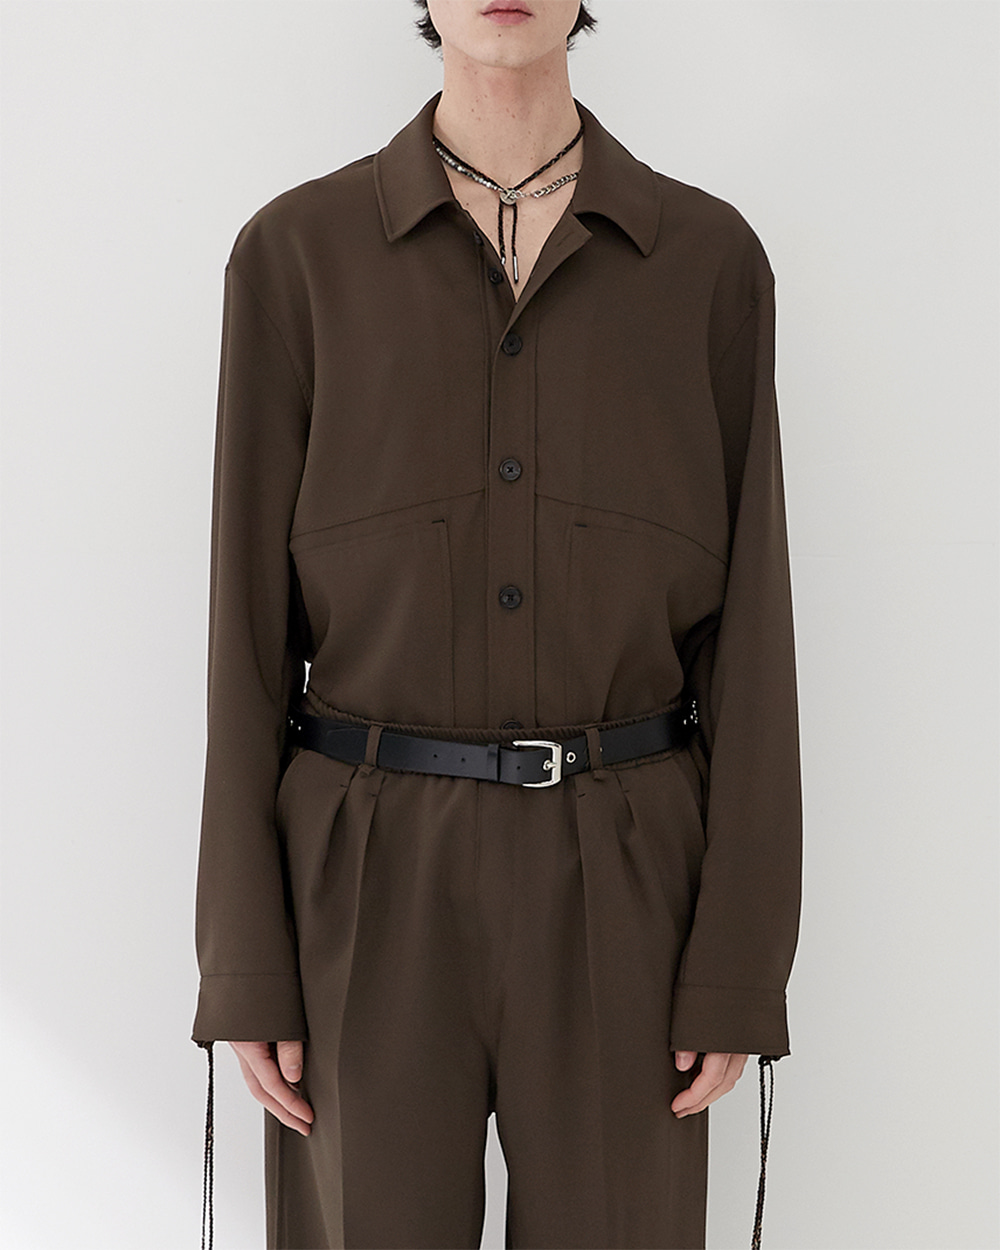 HALEINE알렌느 DARKBROWN 3D detail triacetate shirts jacket(NJ021)